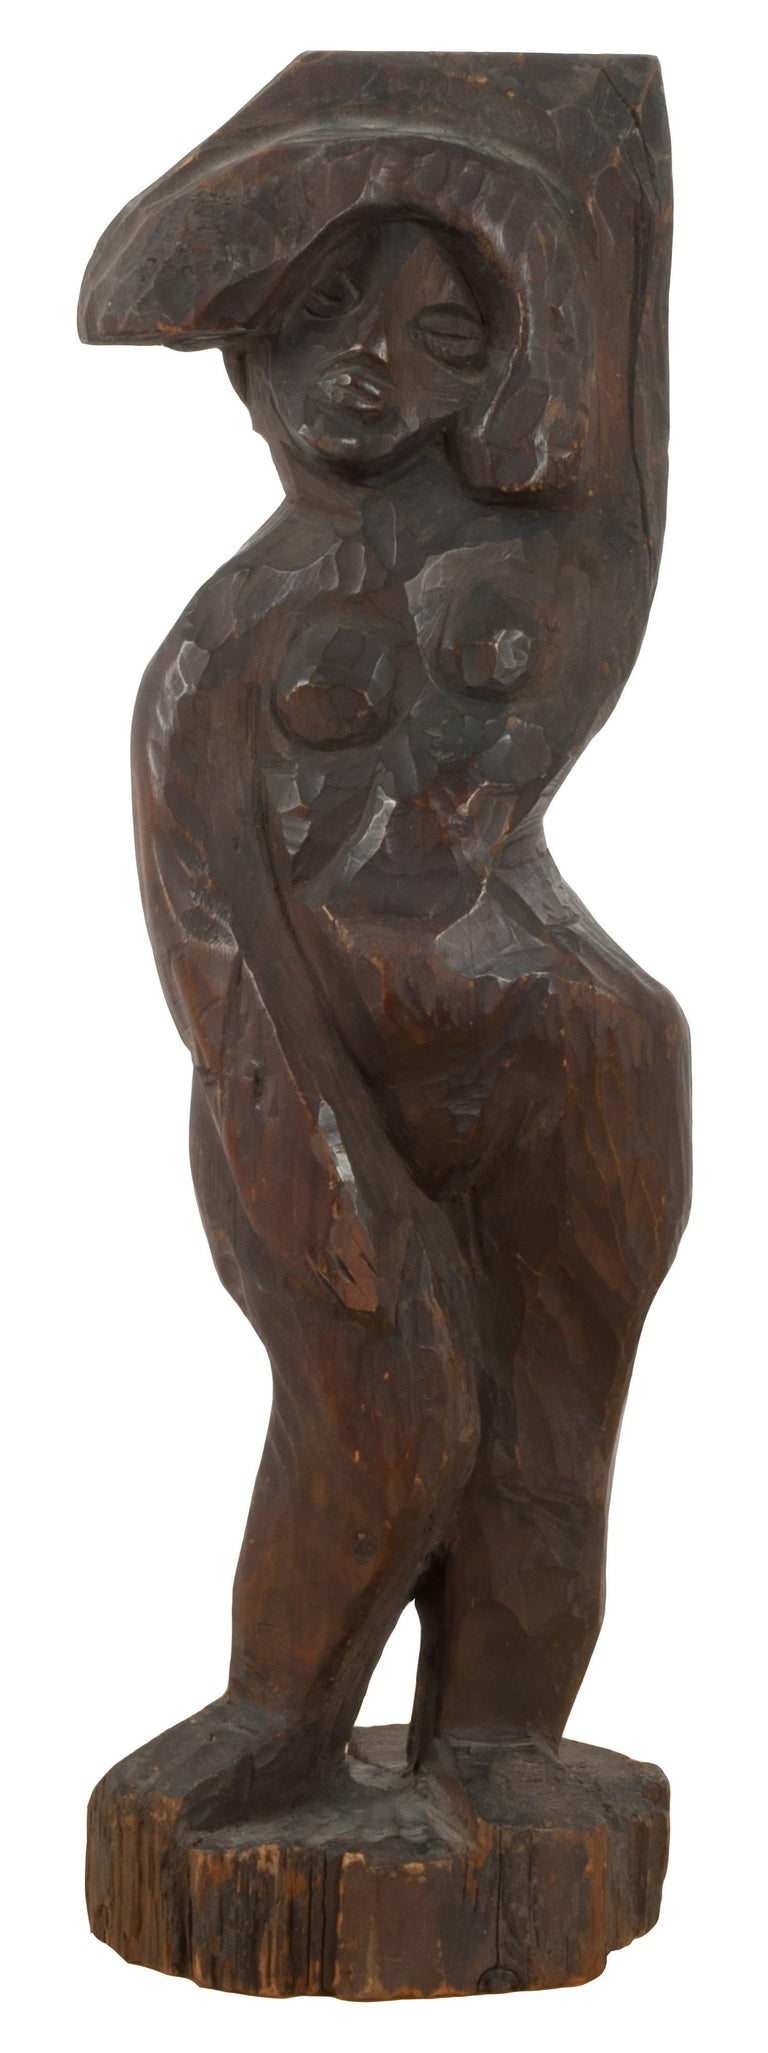 Walt Kuhn Nude Sculpture - Standing Female Nude After Alexander Archipenko Negress (La Negresse)